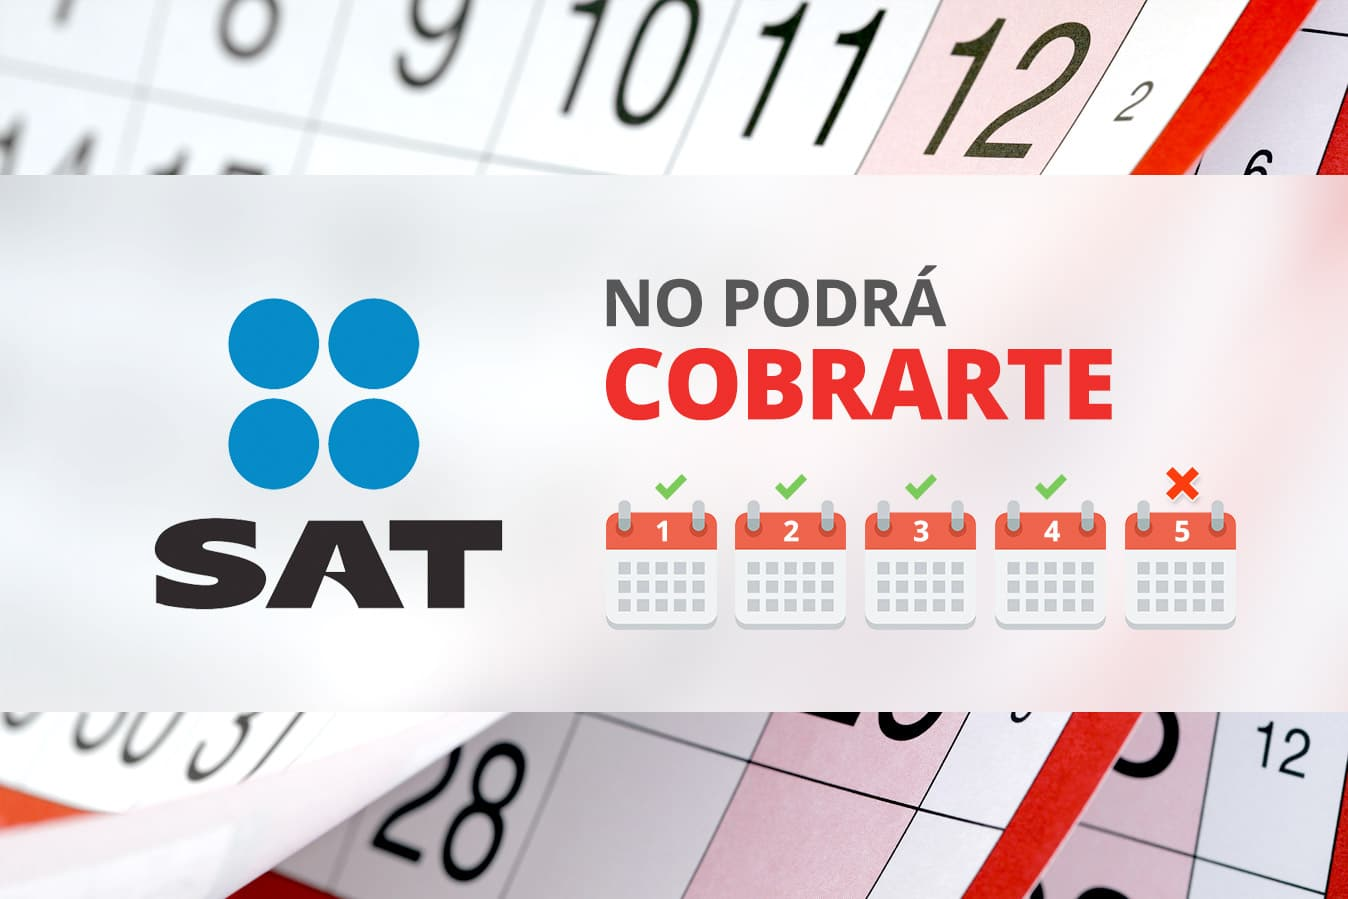 sat no podra cobrarte